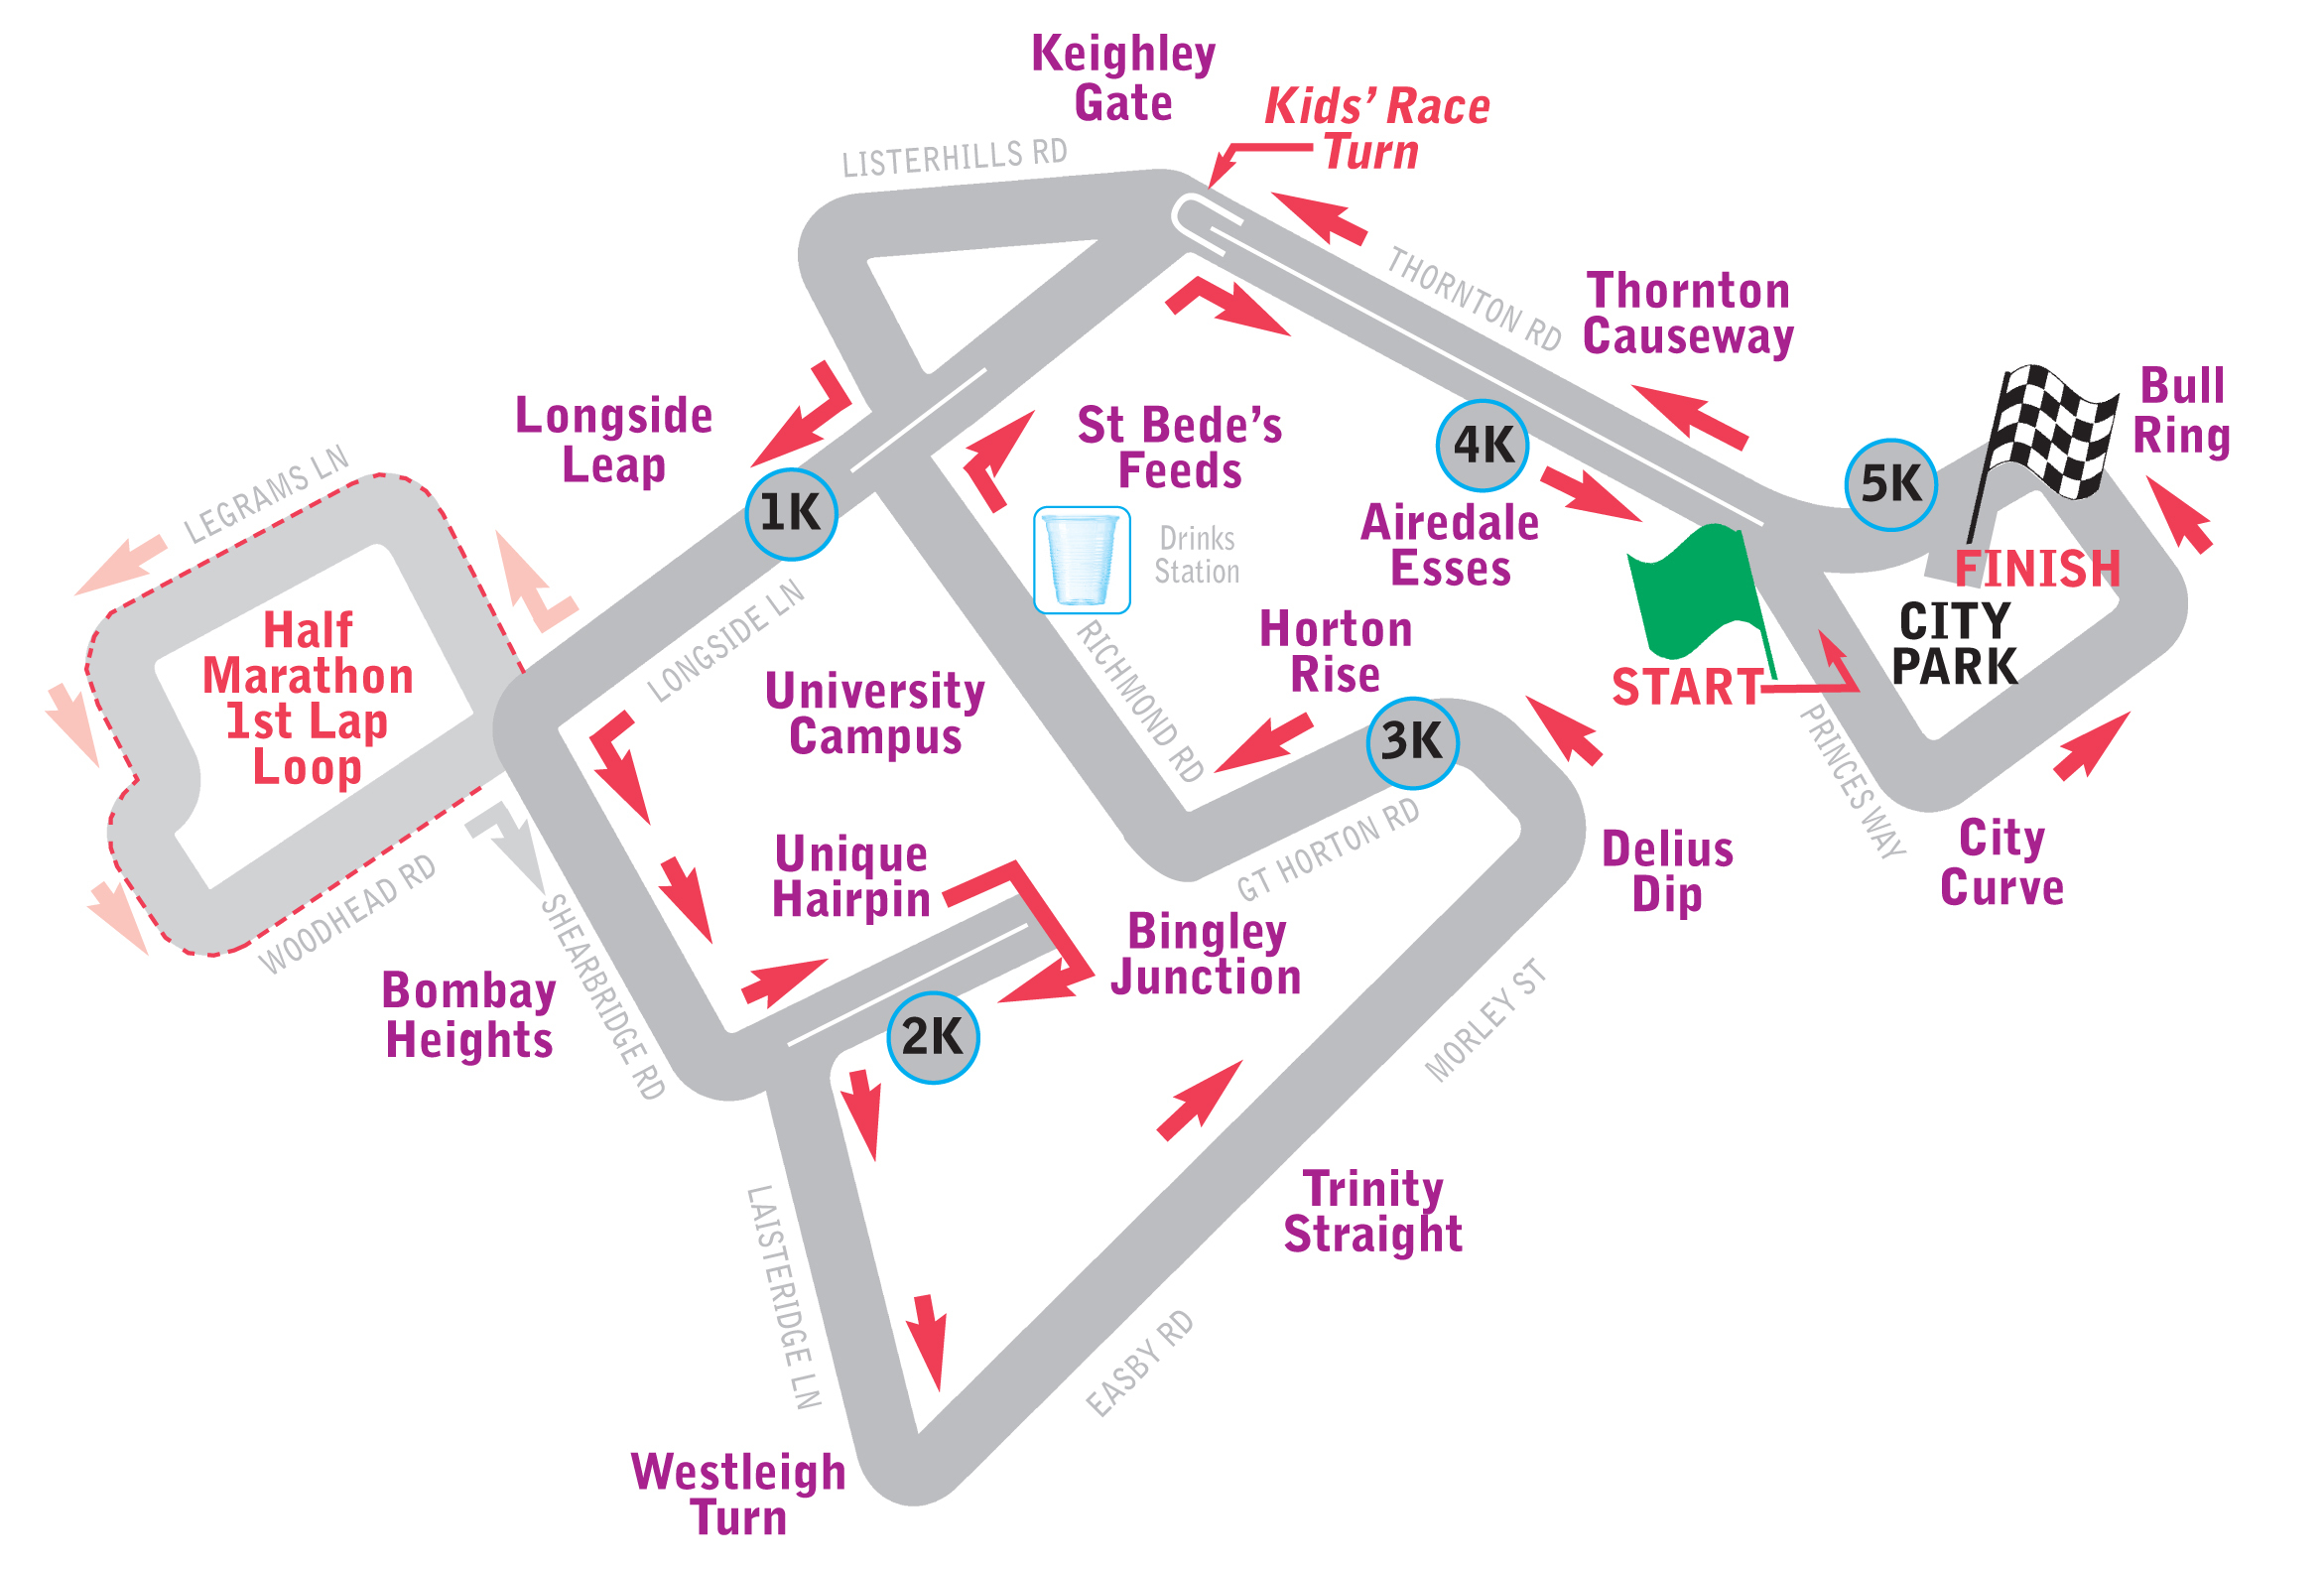 Bradford Telegraph and Argus: City Run 2014 route map